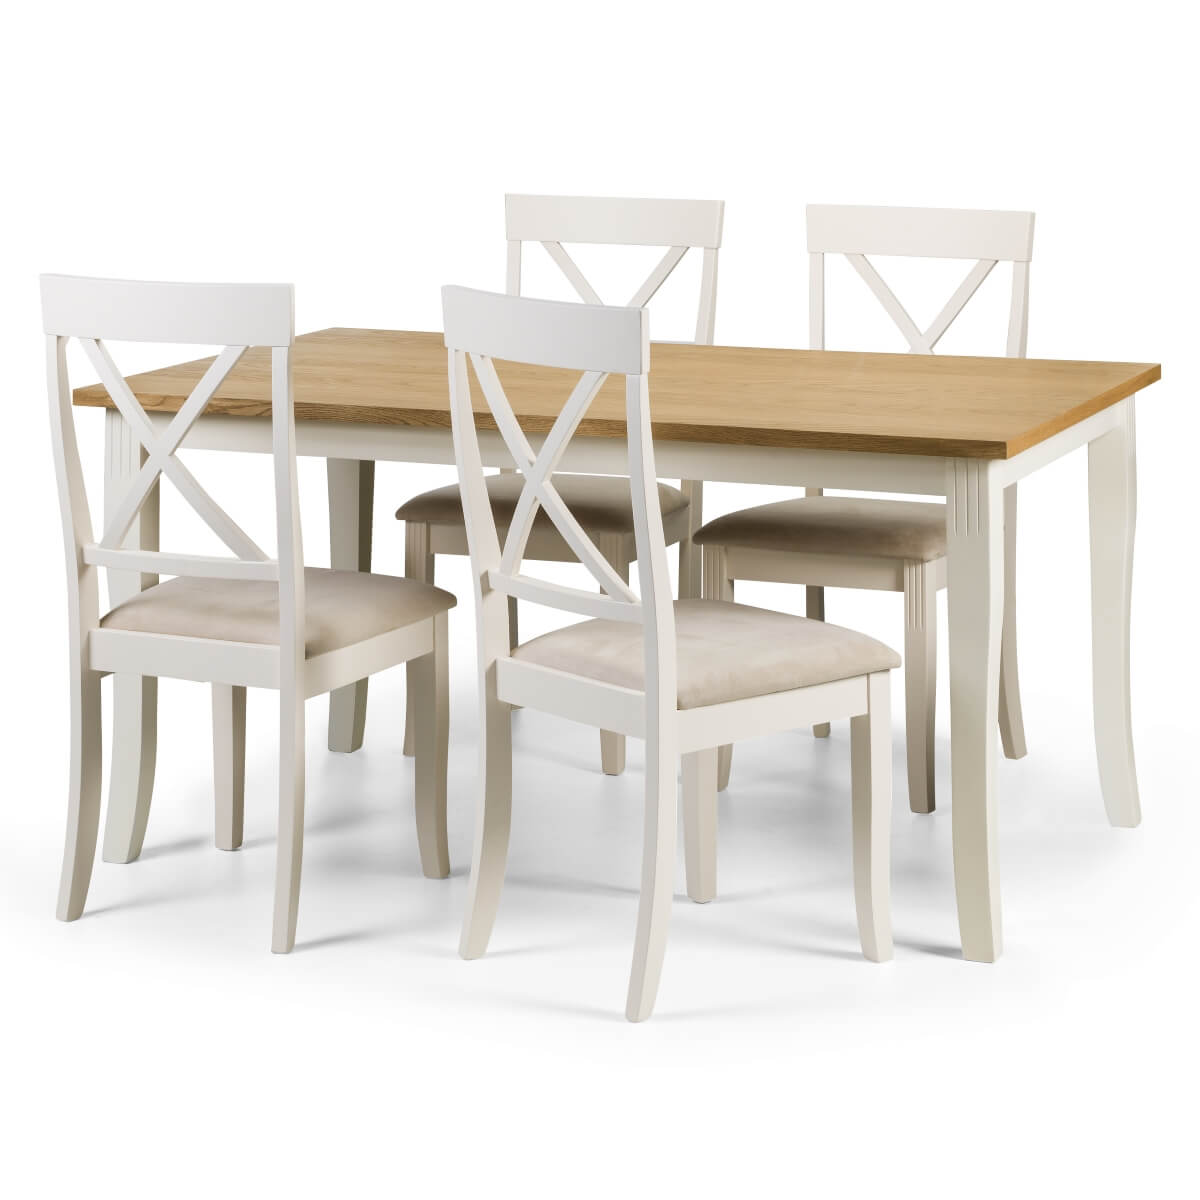 Dining Set Davenport Dining Table And 4 Chairs In Ivory Oak Dav004